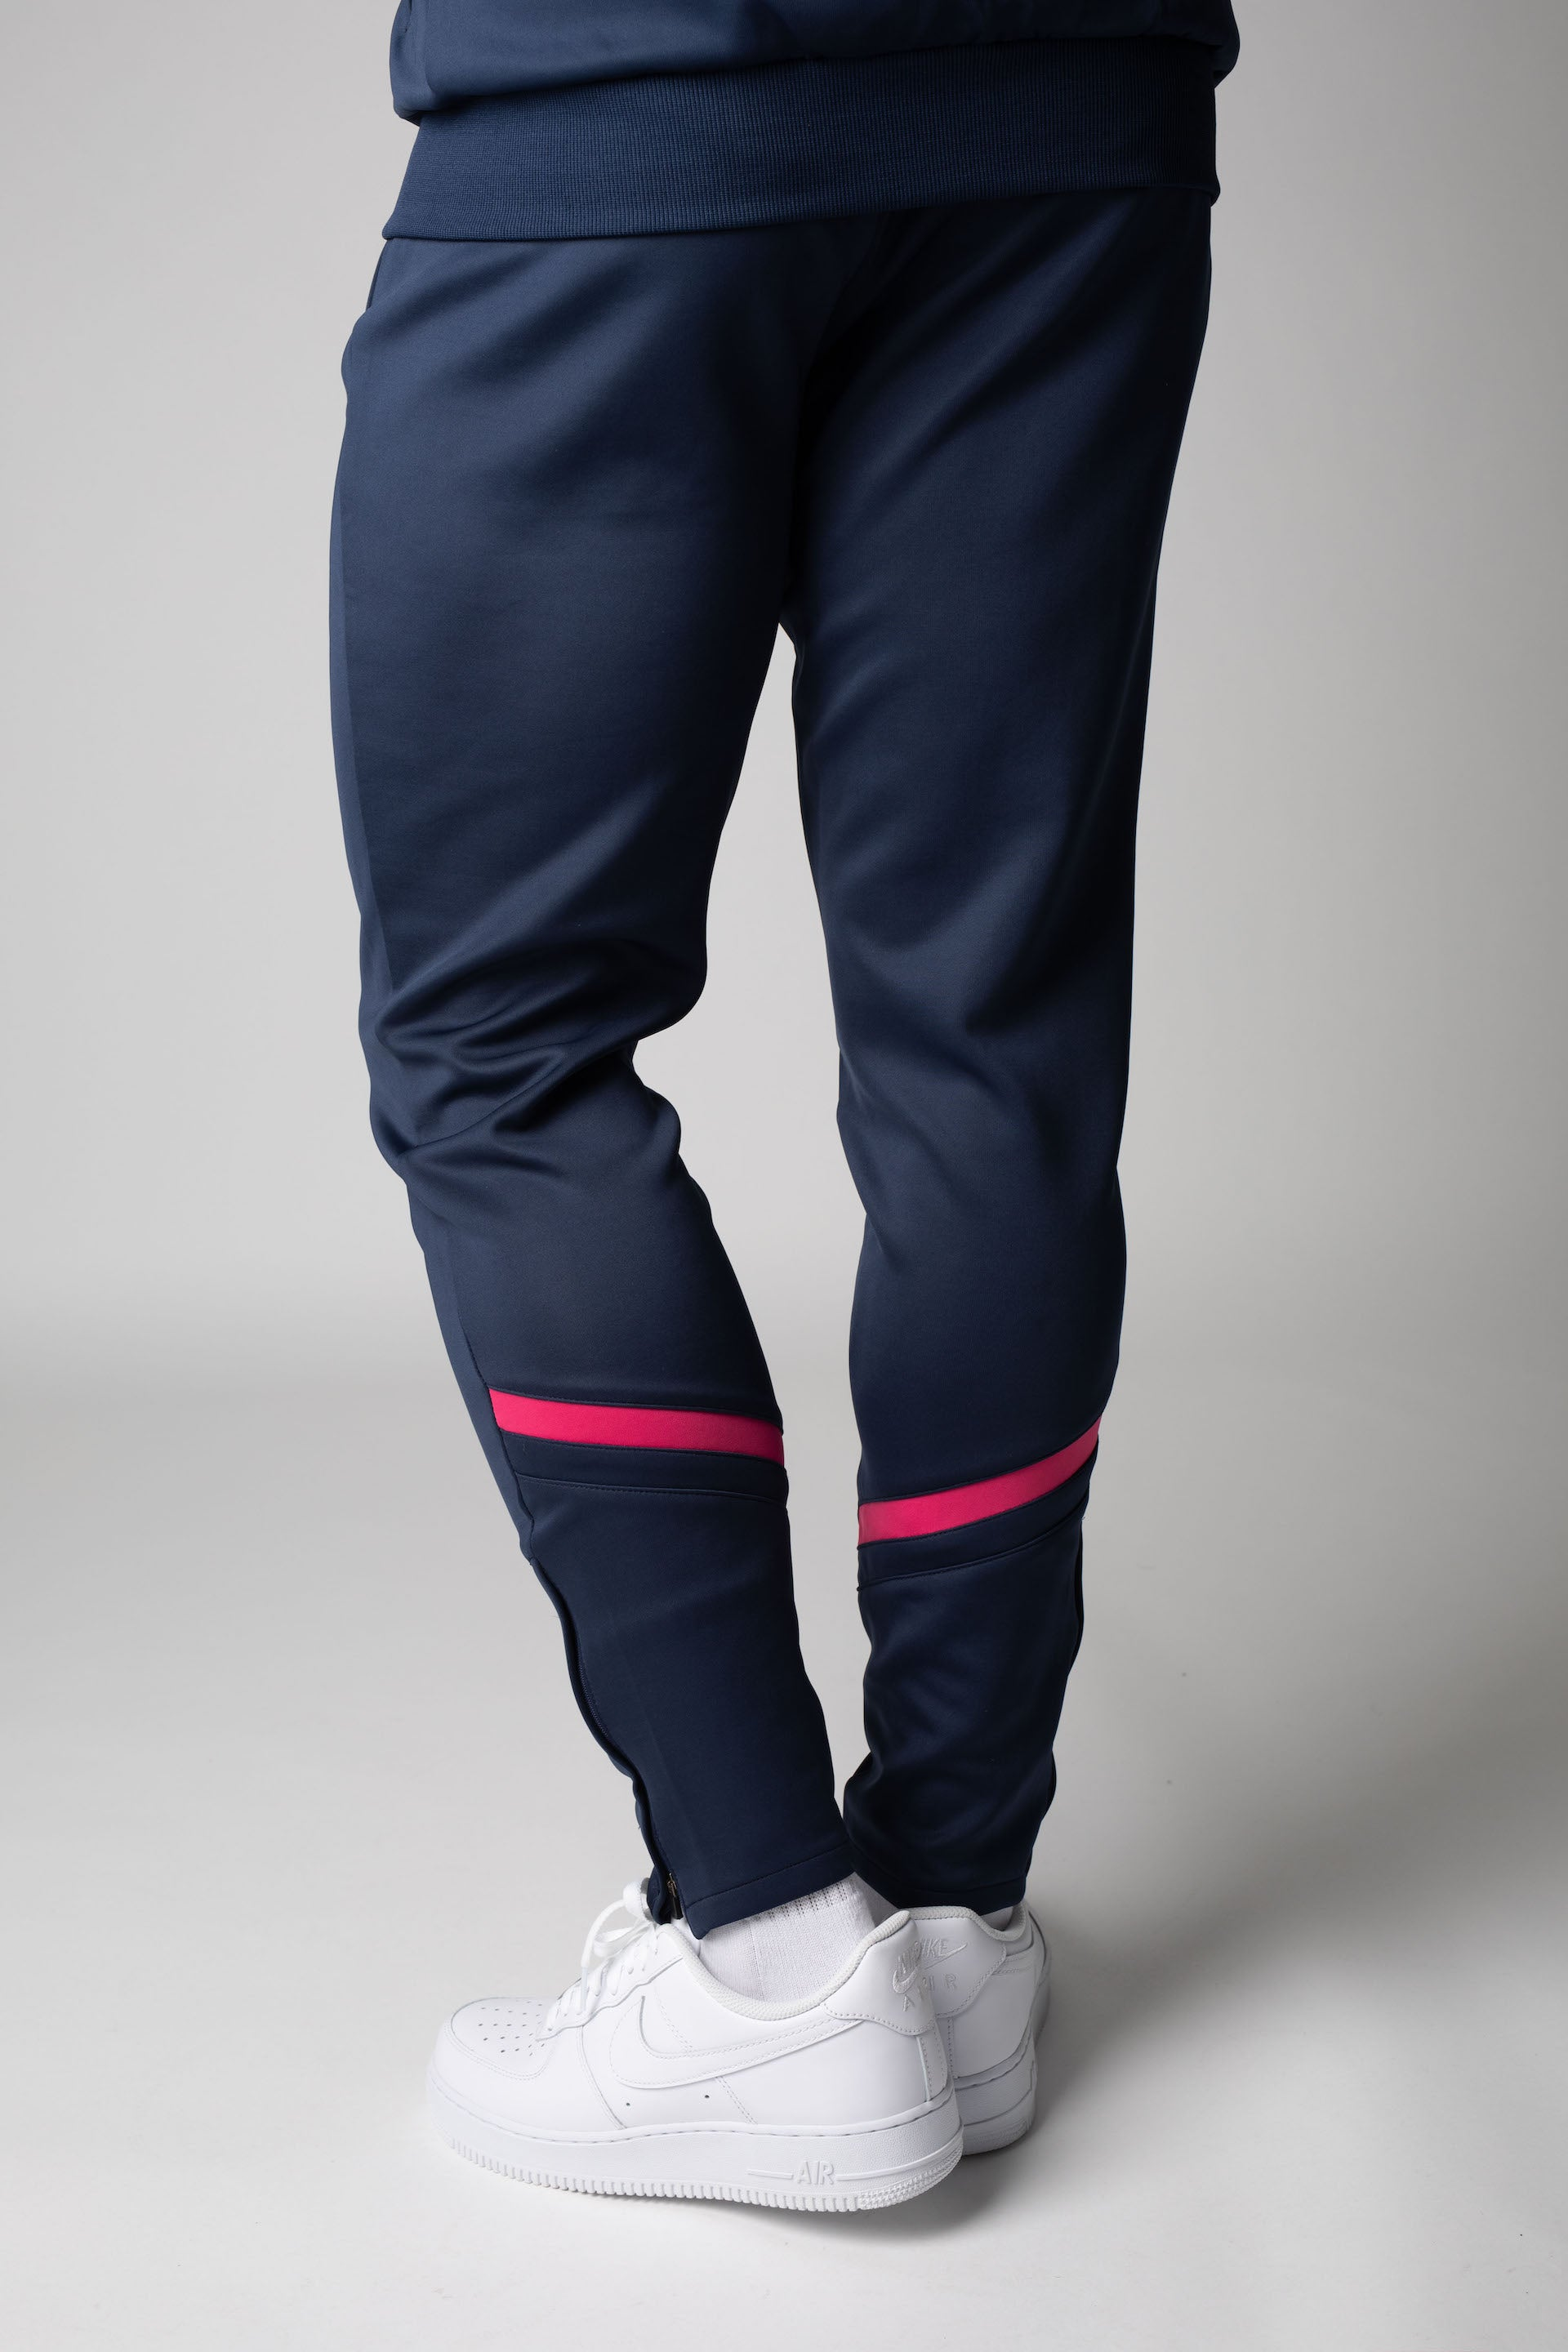 CHEVRON PLUS TRACKPANTS NAVY/PINK - Lakey